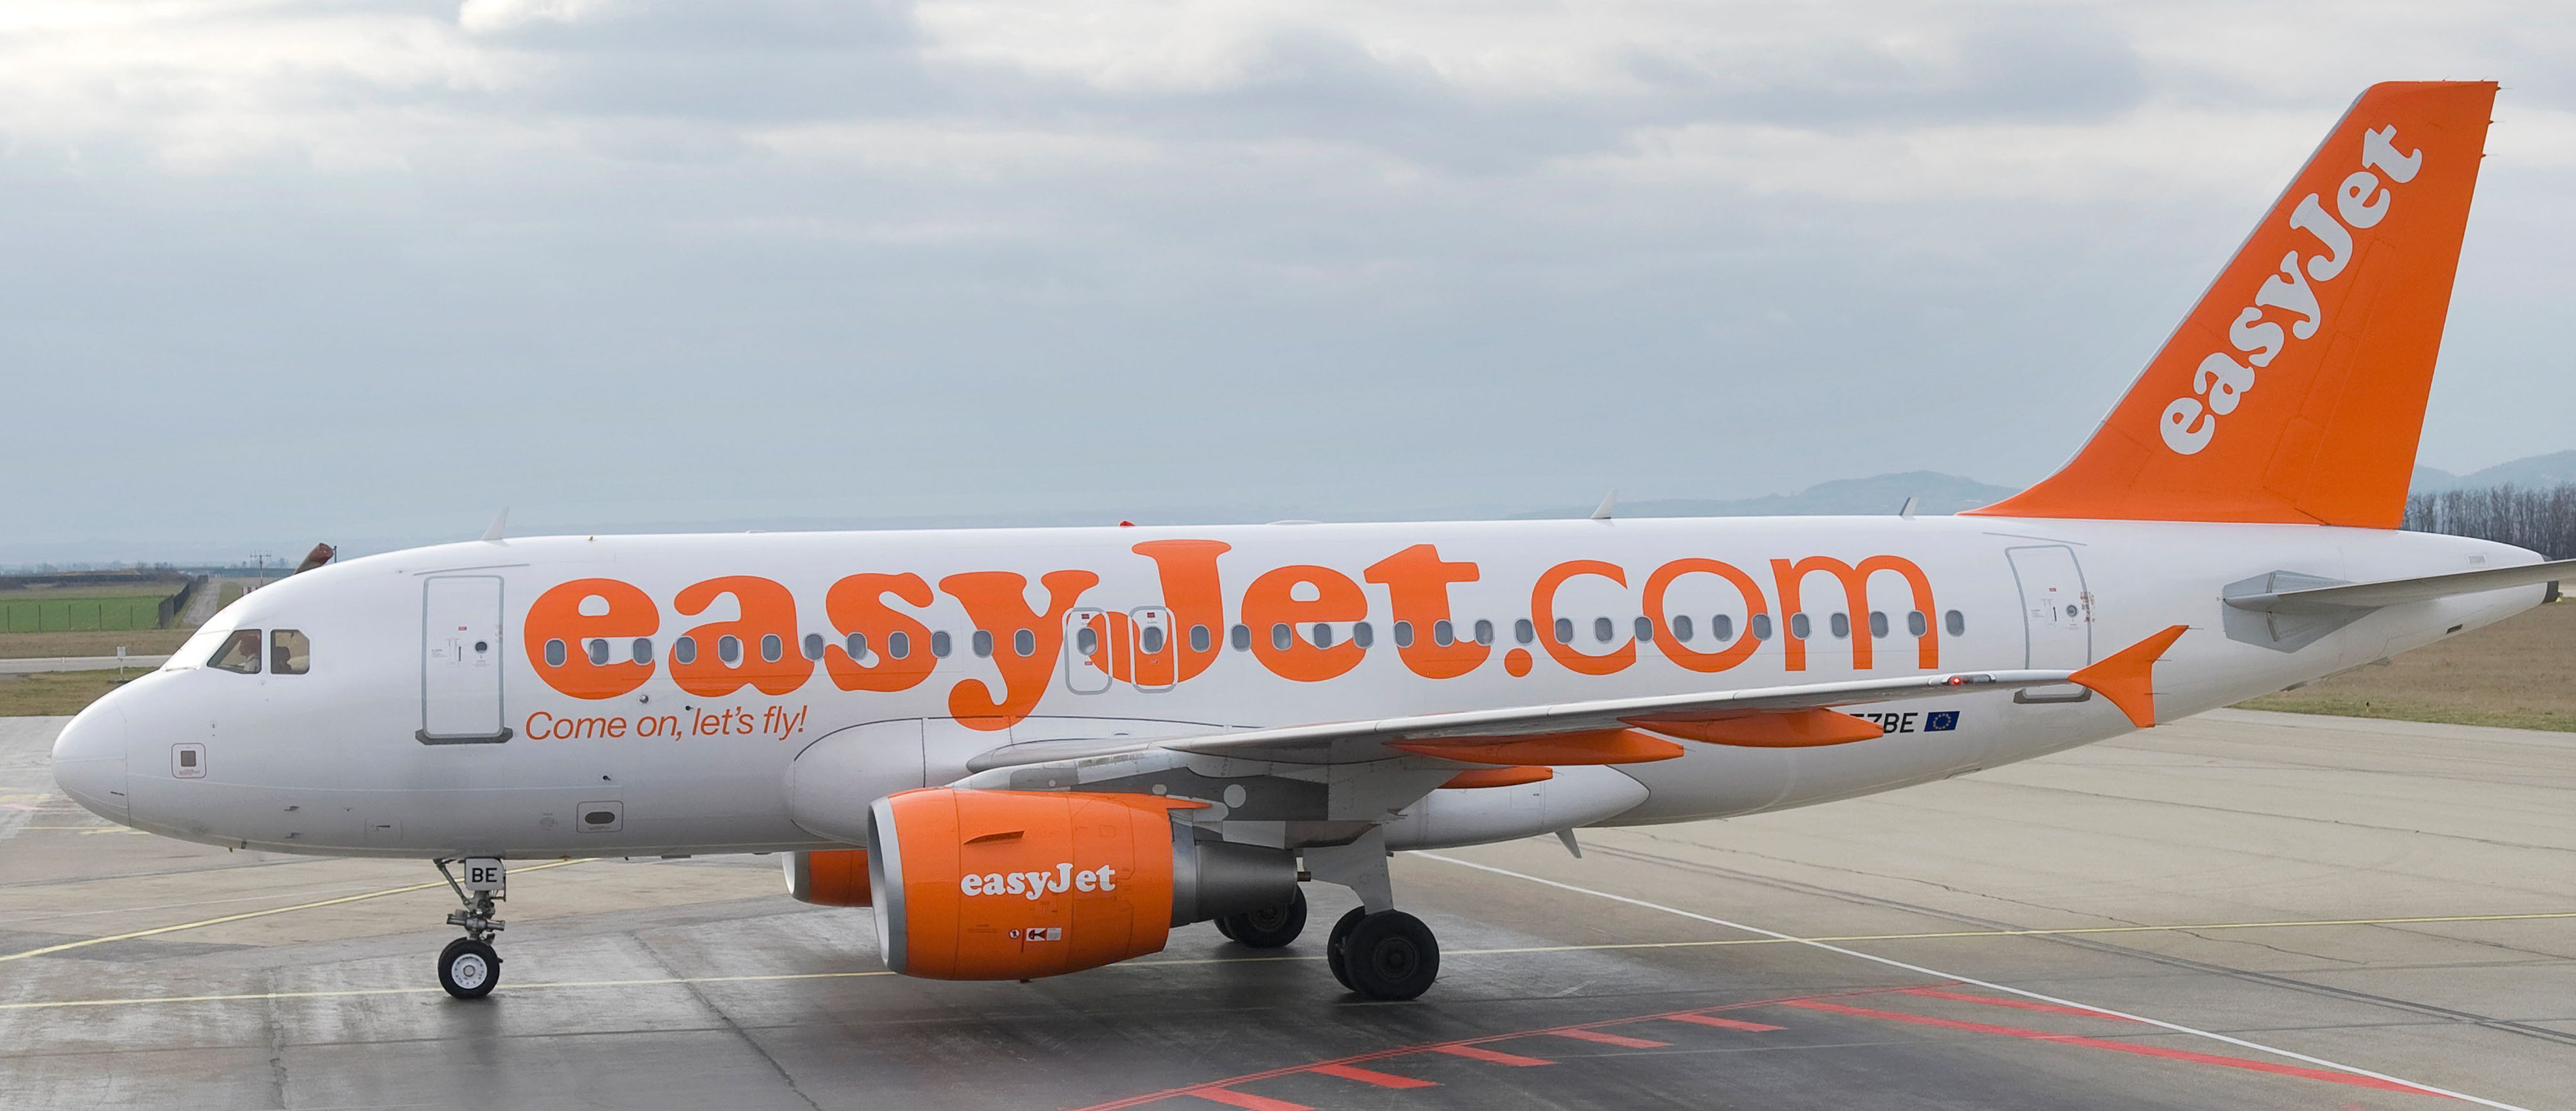 Easyjet Plc propose a dividend of 43.9 pence subject to approval by shareholders